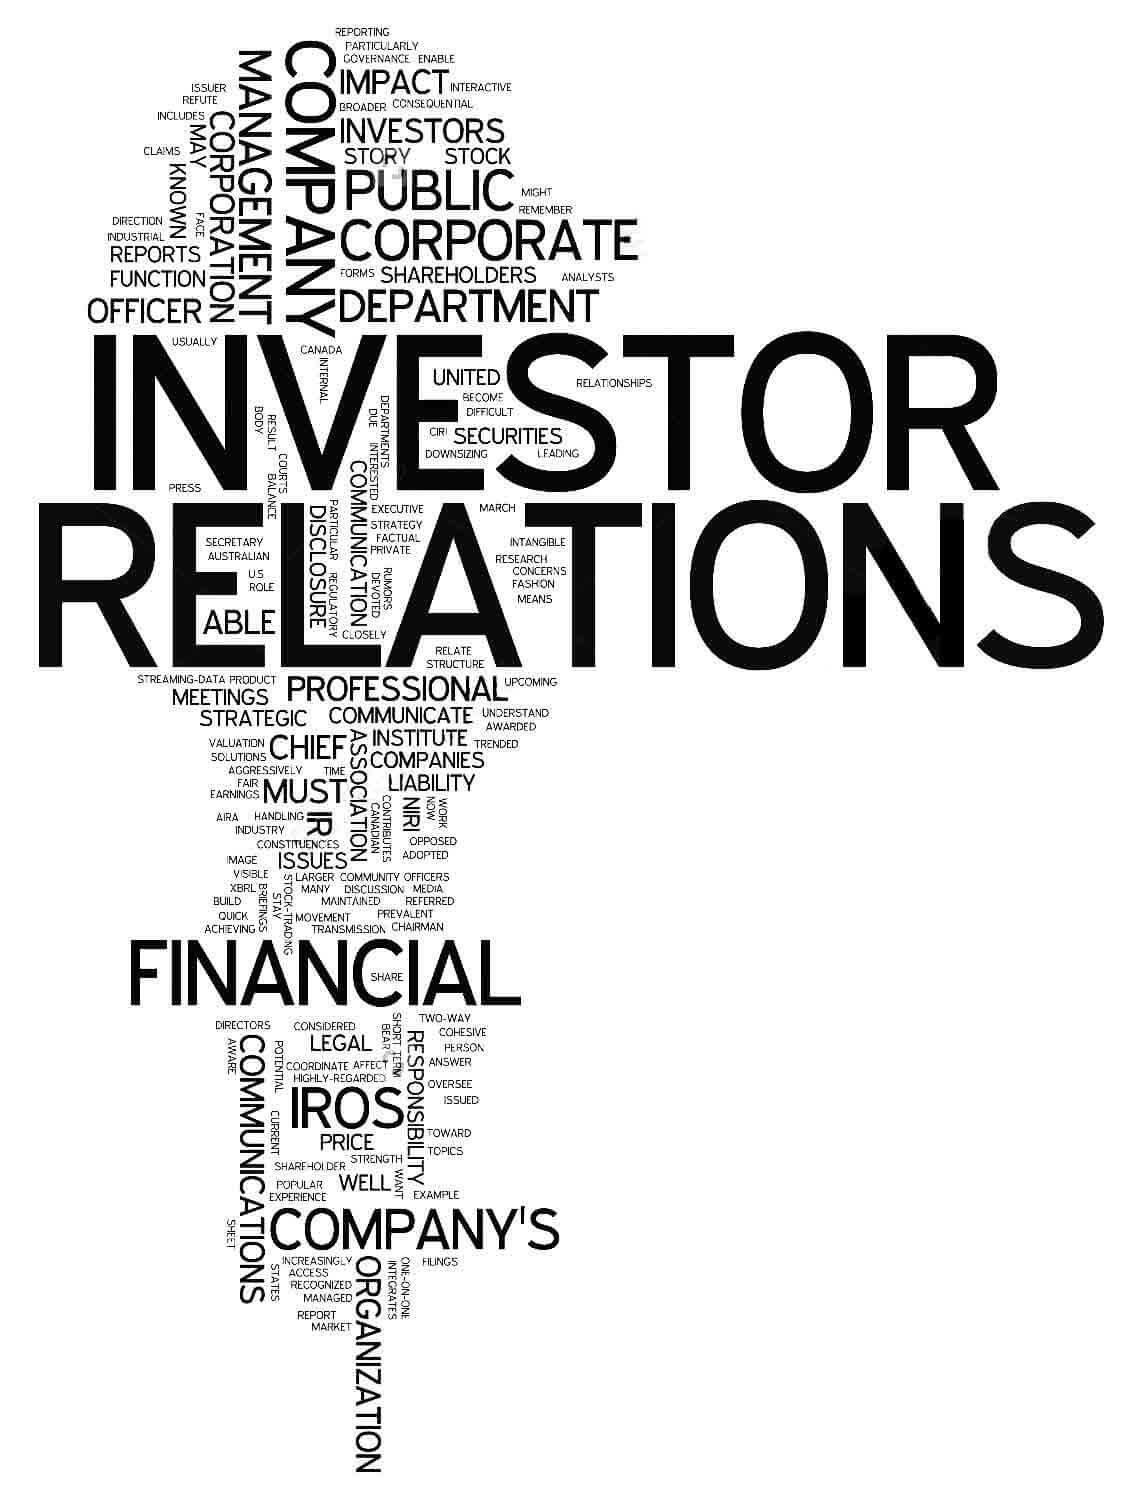 Investor relation showing image/